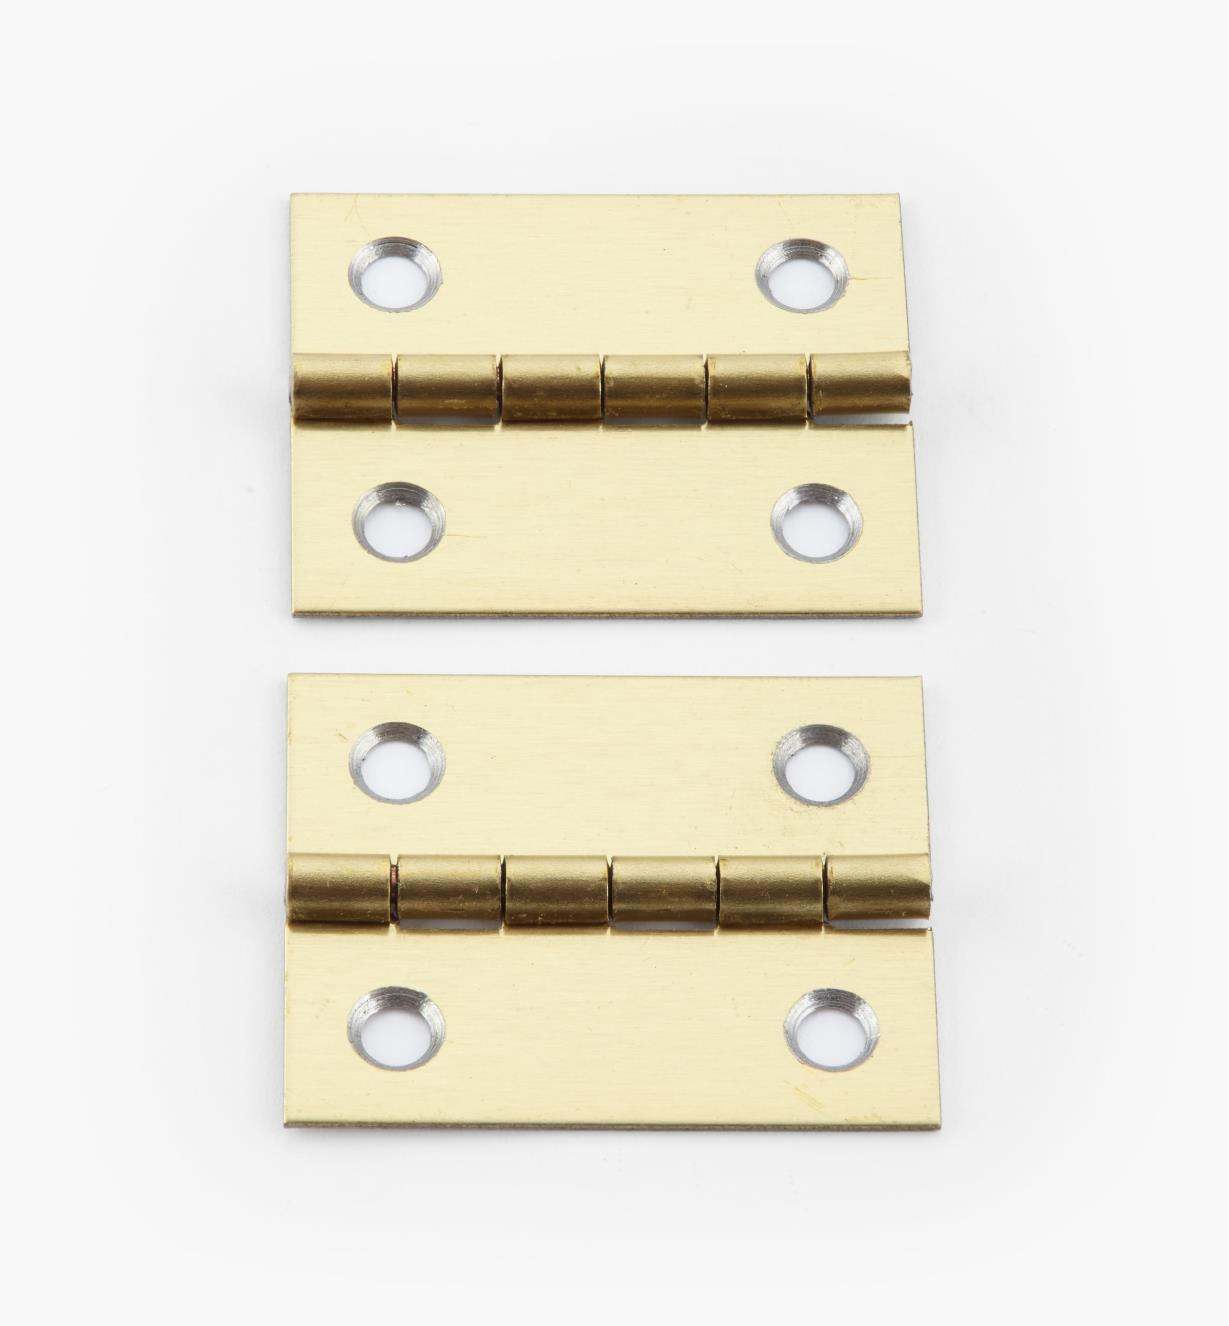 00D3021 - 30mm x 26mm Small Box Hinges, pr.